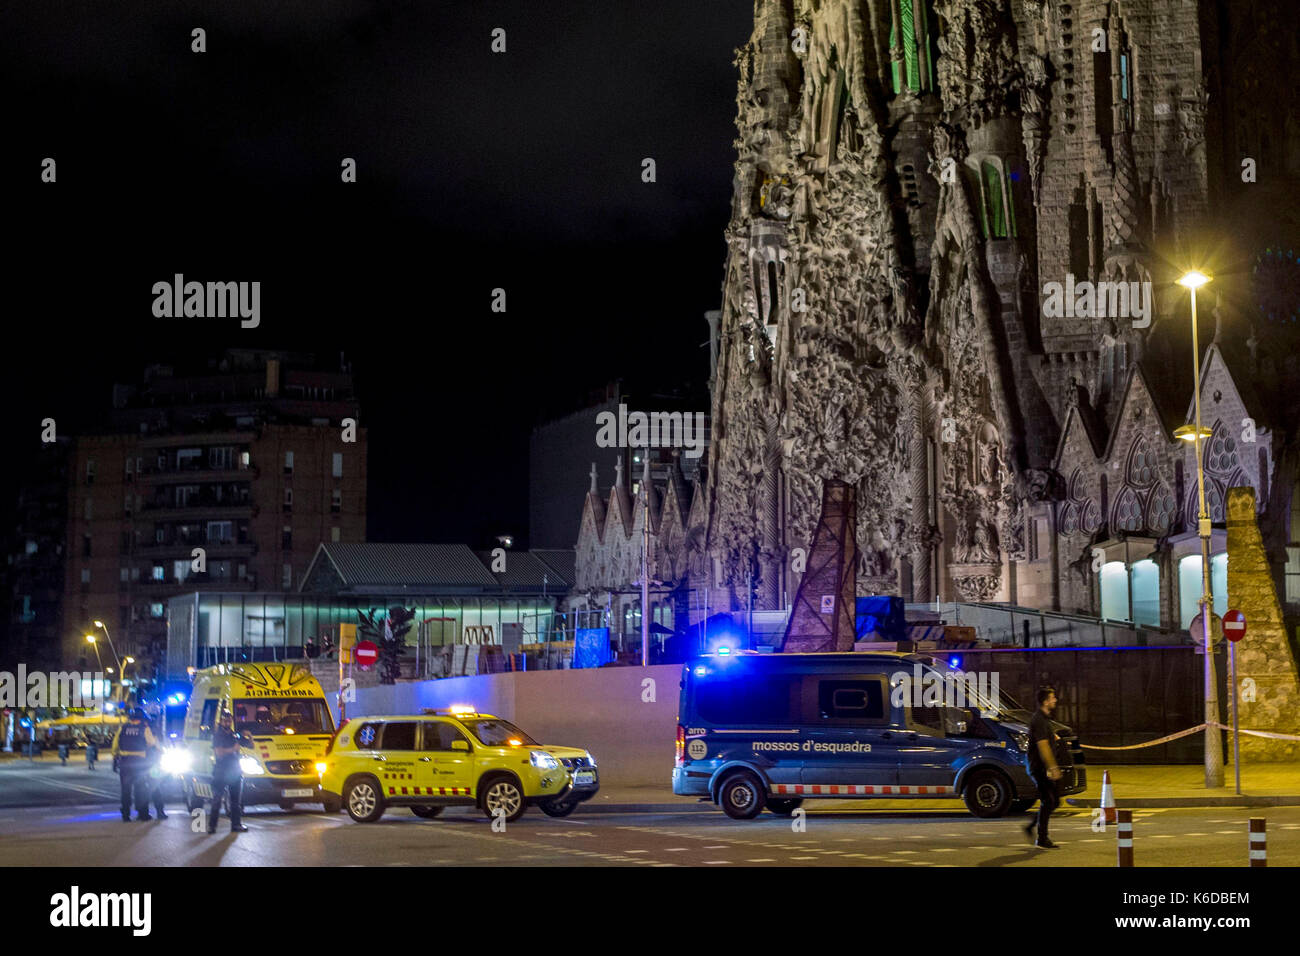 Authorities watch the perimeter of the Sagrada Familia after a terrorist alert in Barcelona, Catalonia, Spain, 12 September 2017. A fake alarm on the presence of a suspicions van parked near the Sagrada Familia cathedral has forced the cordoning of the perimeter. EFE/Quique Garcia - Stock Image